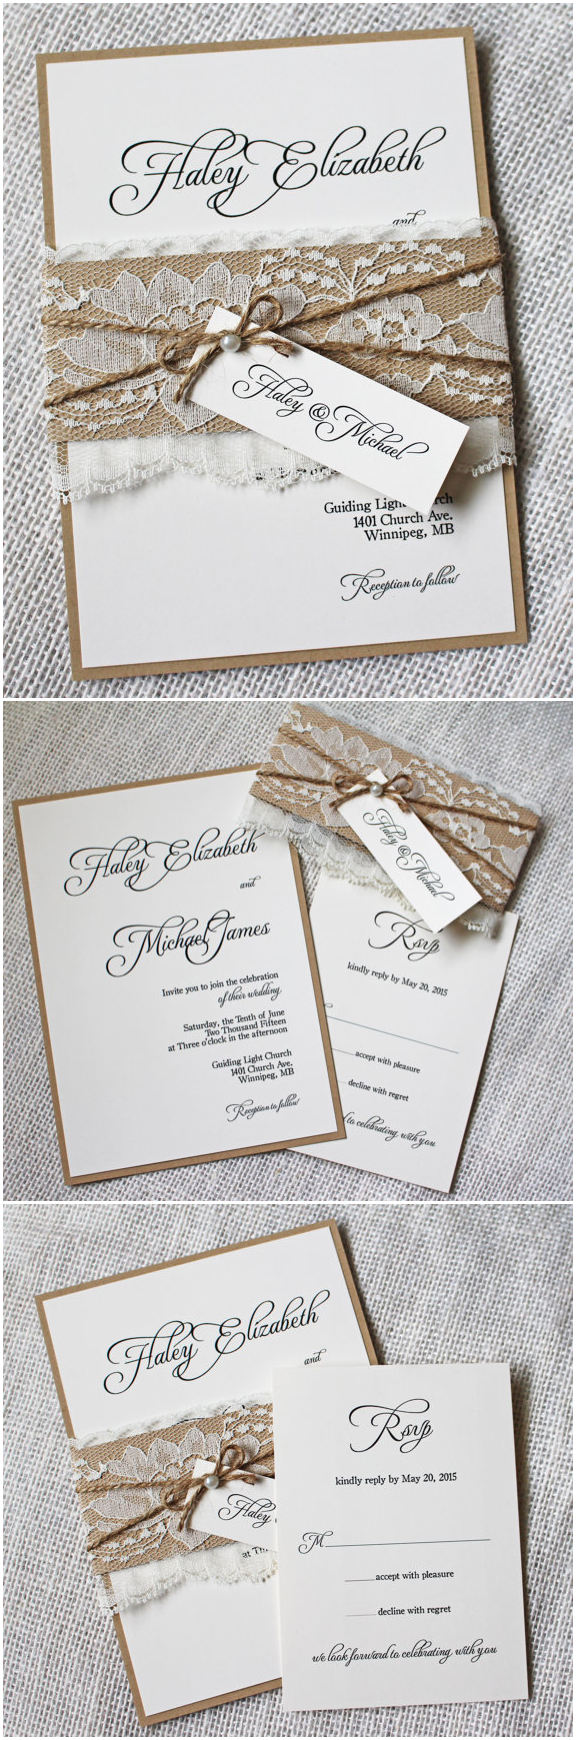 Fullsize Of Rustic Wedding Invitations